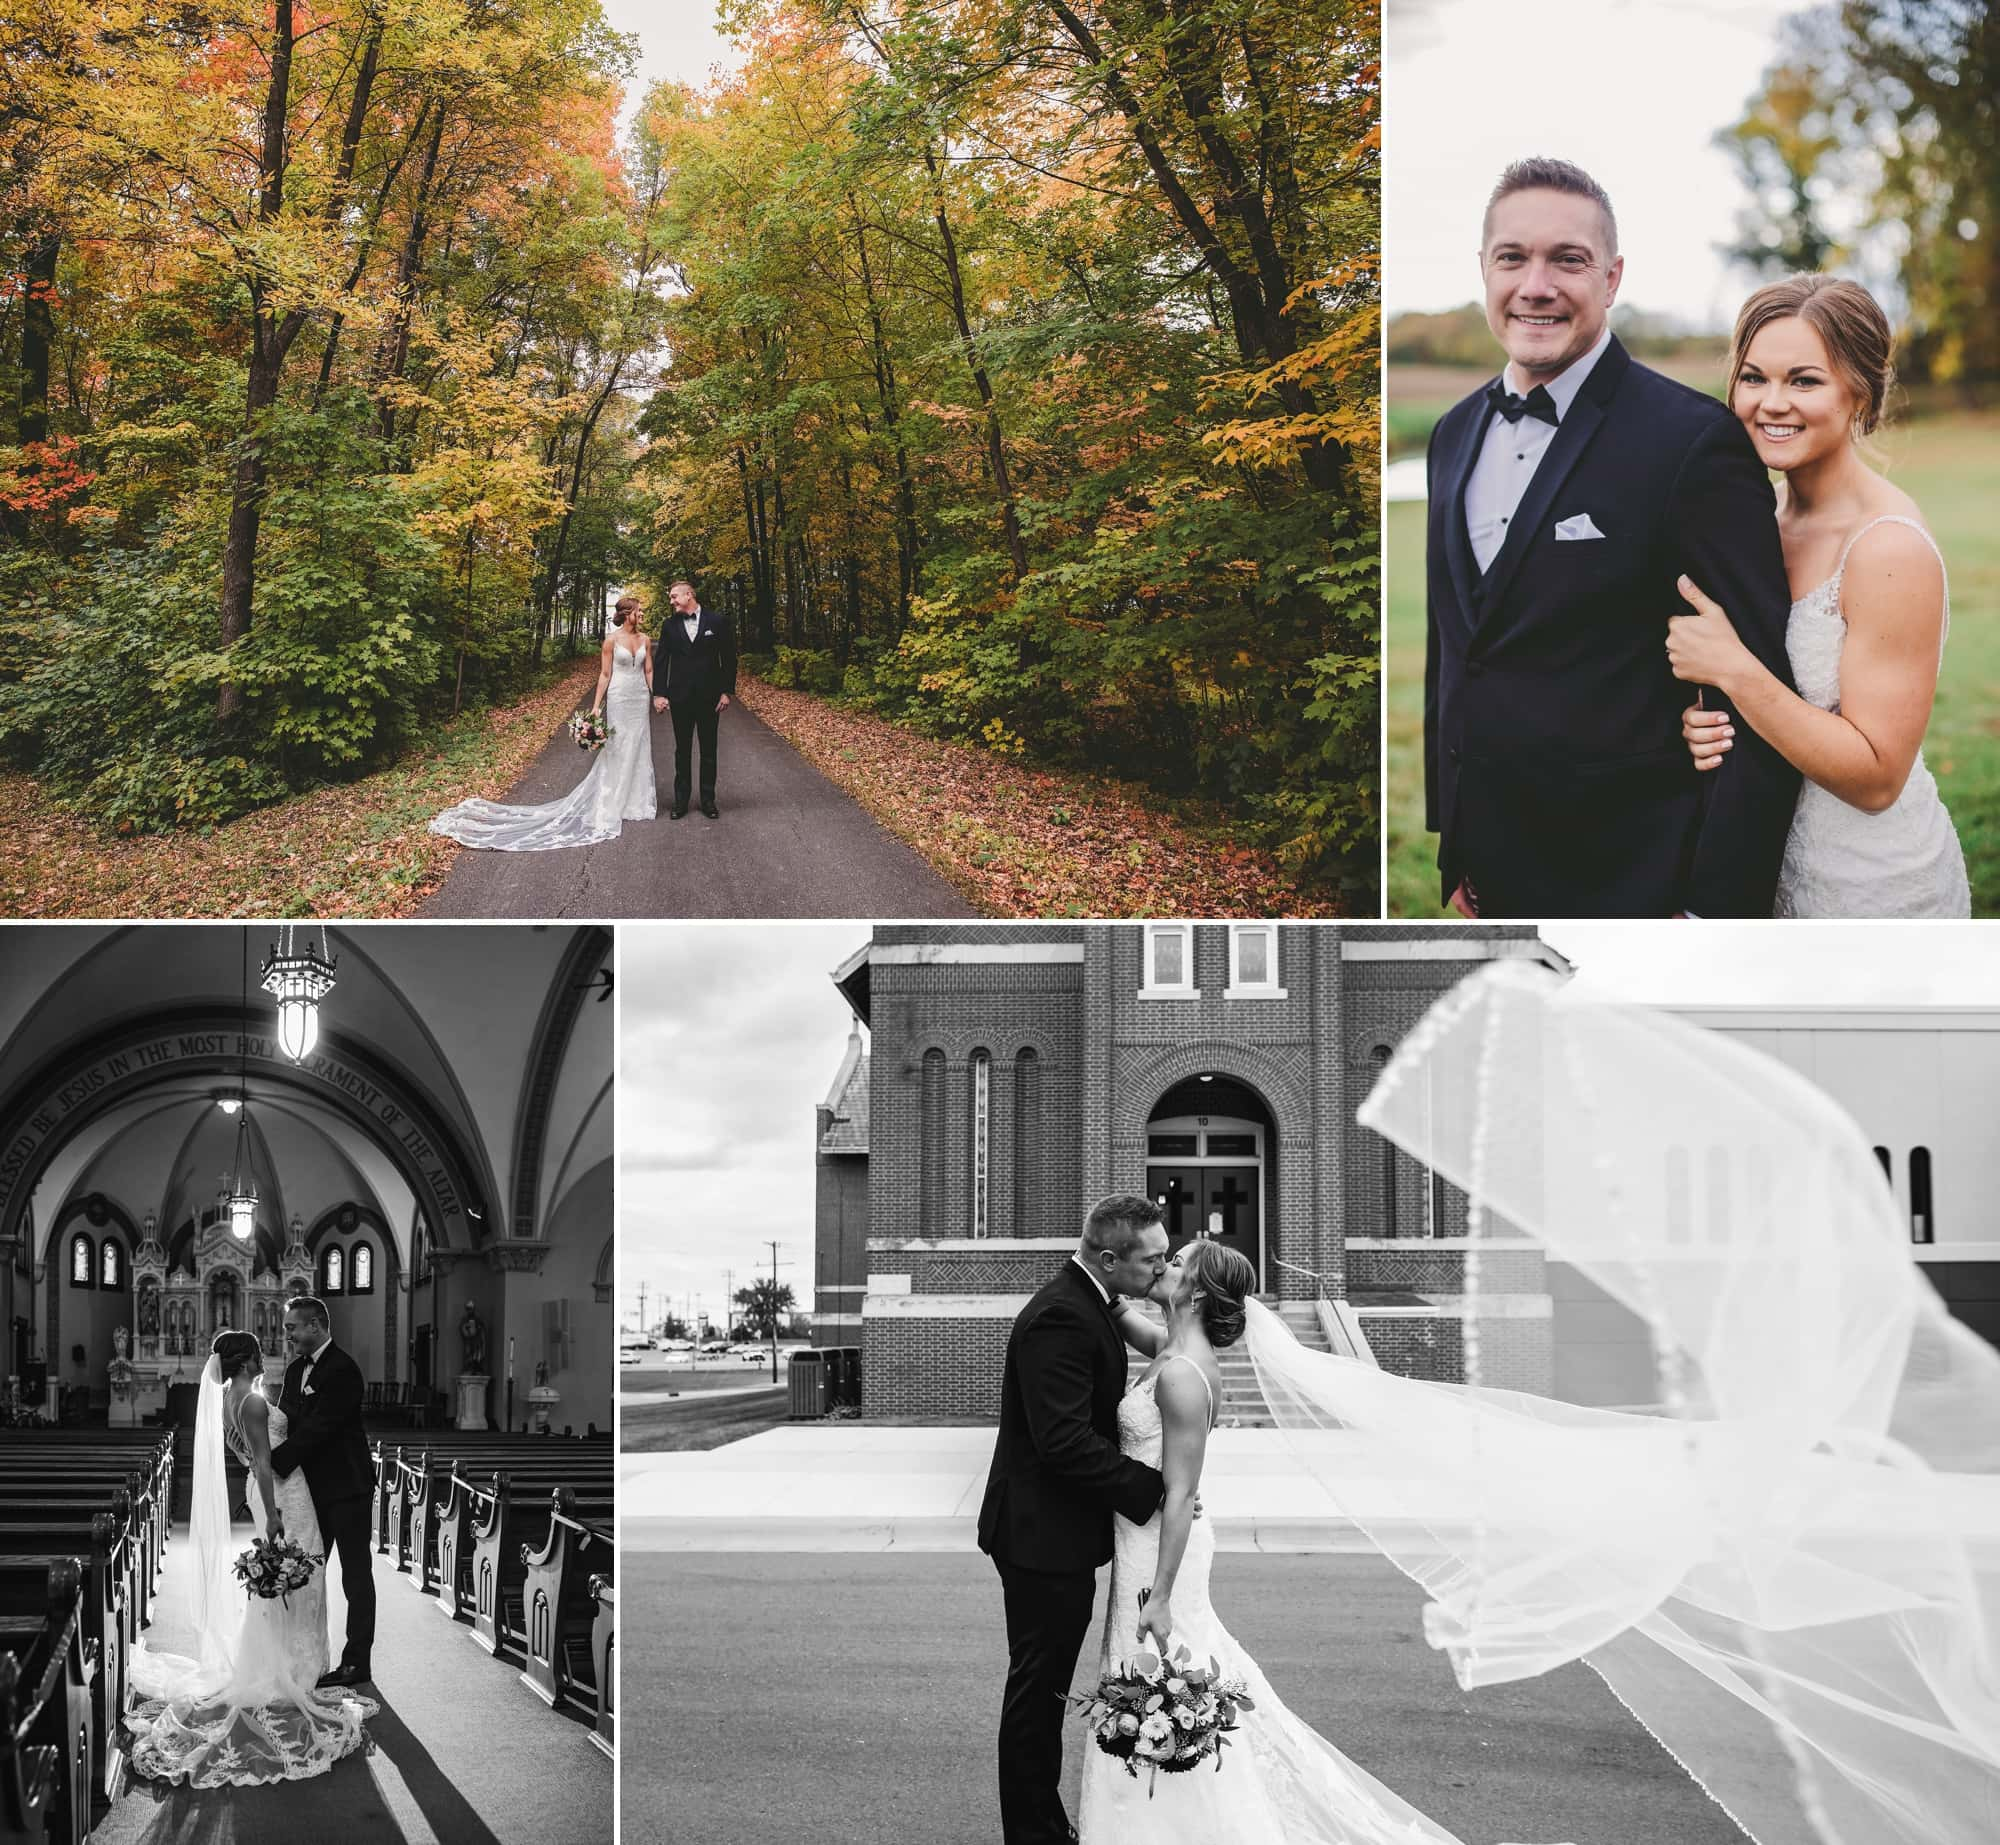 Photos of bridee Sara and groom Giles in Rogers, Minnesota